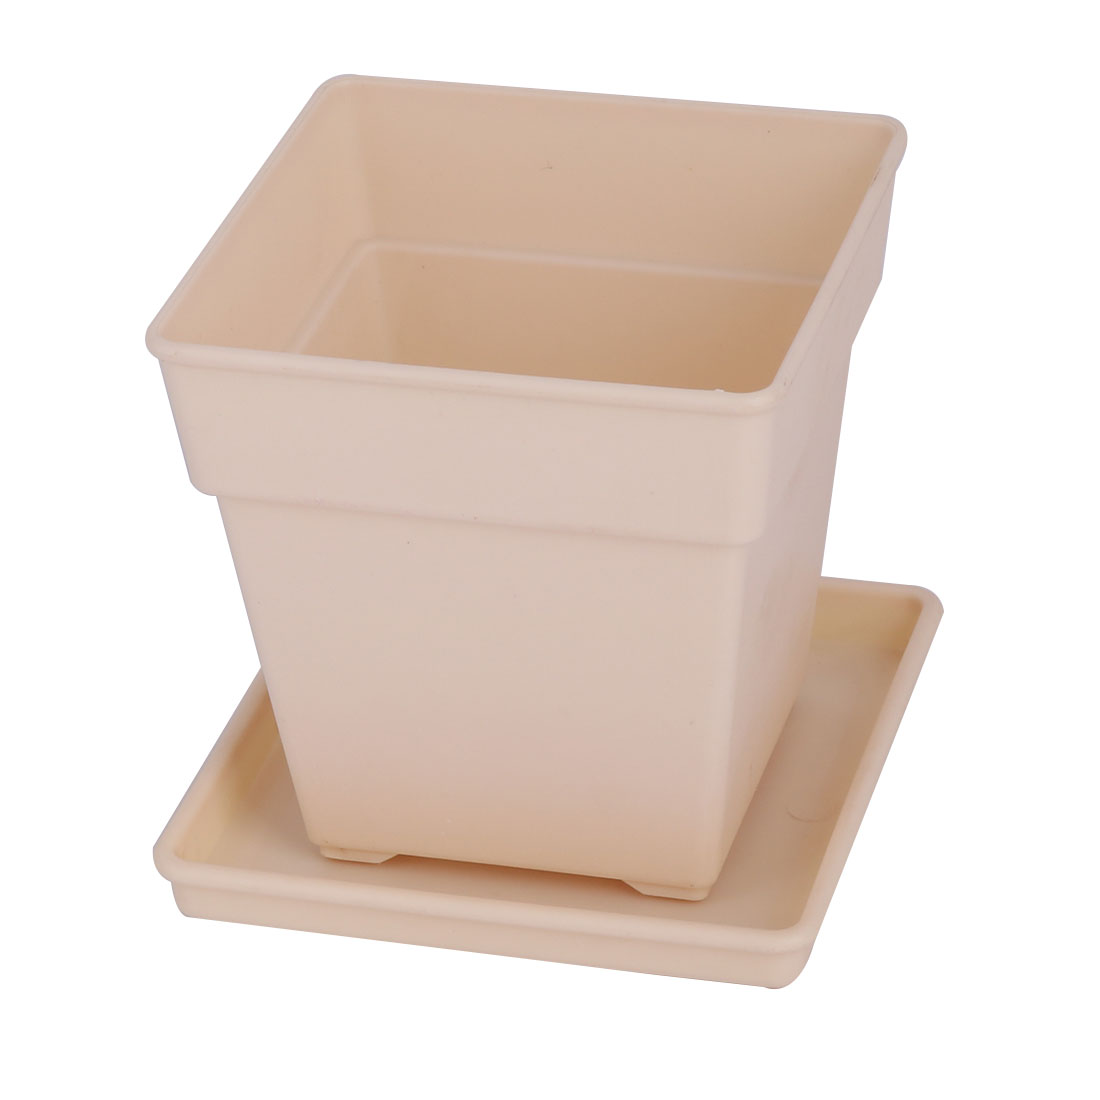 Desktop Decor Plastic Square Flower Grass Plant Pot Tray Holder Container Beige